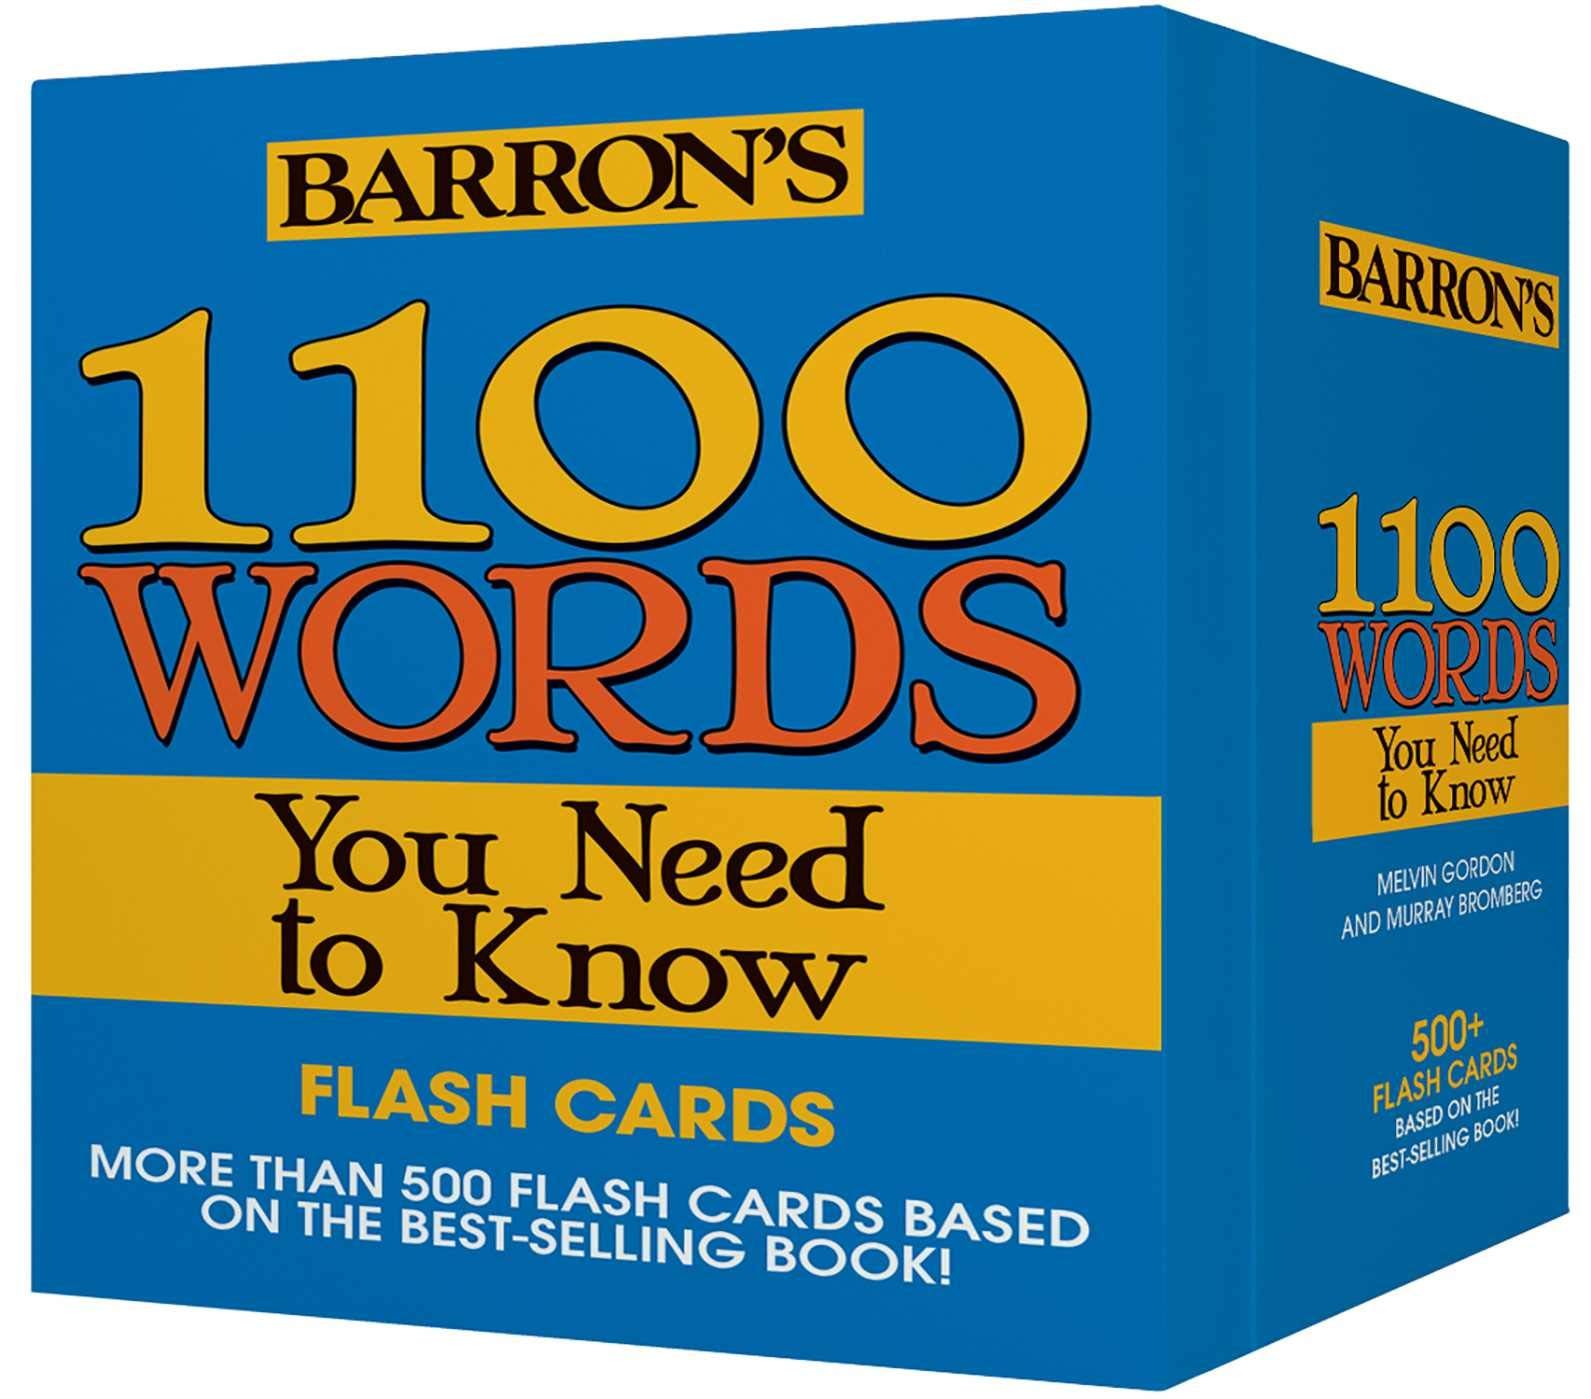 1100 Words You Need to Know Flashcards: Amazon co uk: Melvin